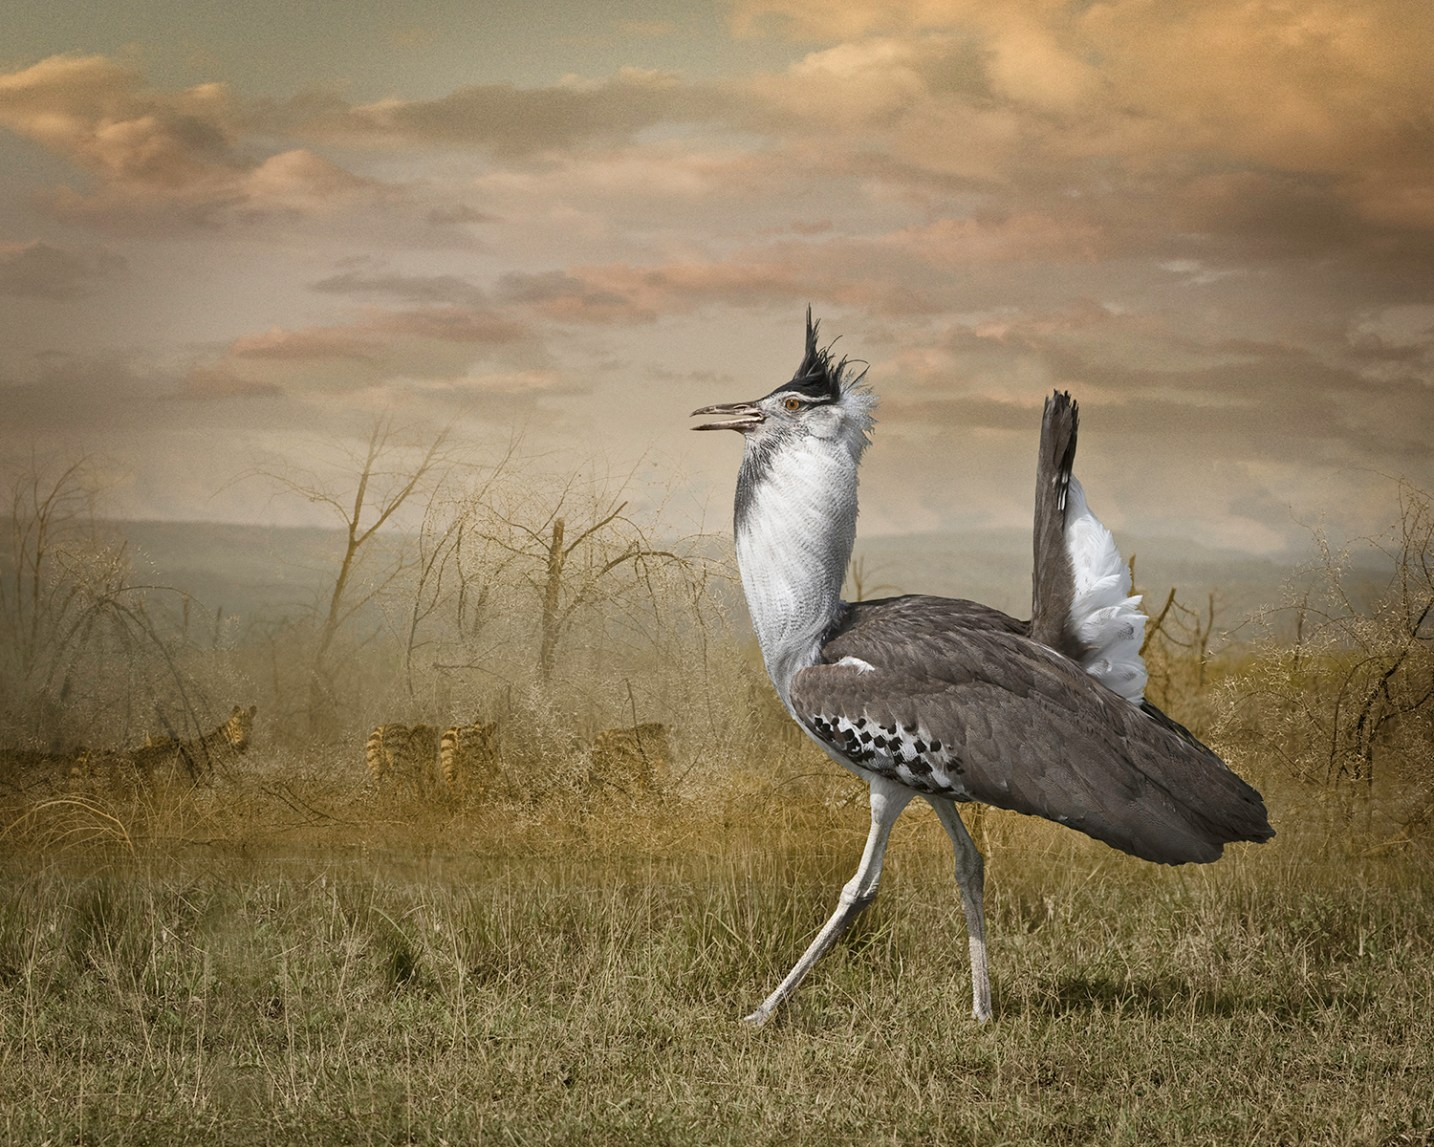 Kori Bustard with Zebras © Cheryl Medow